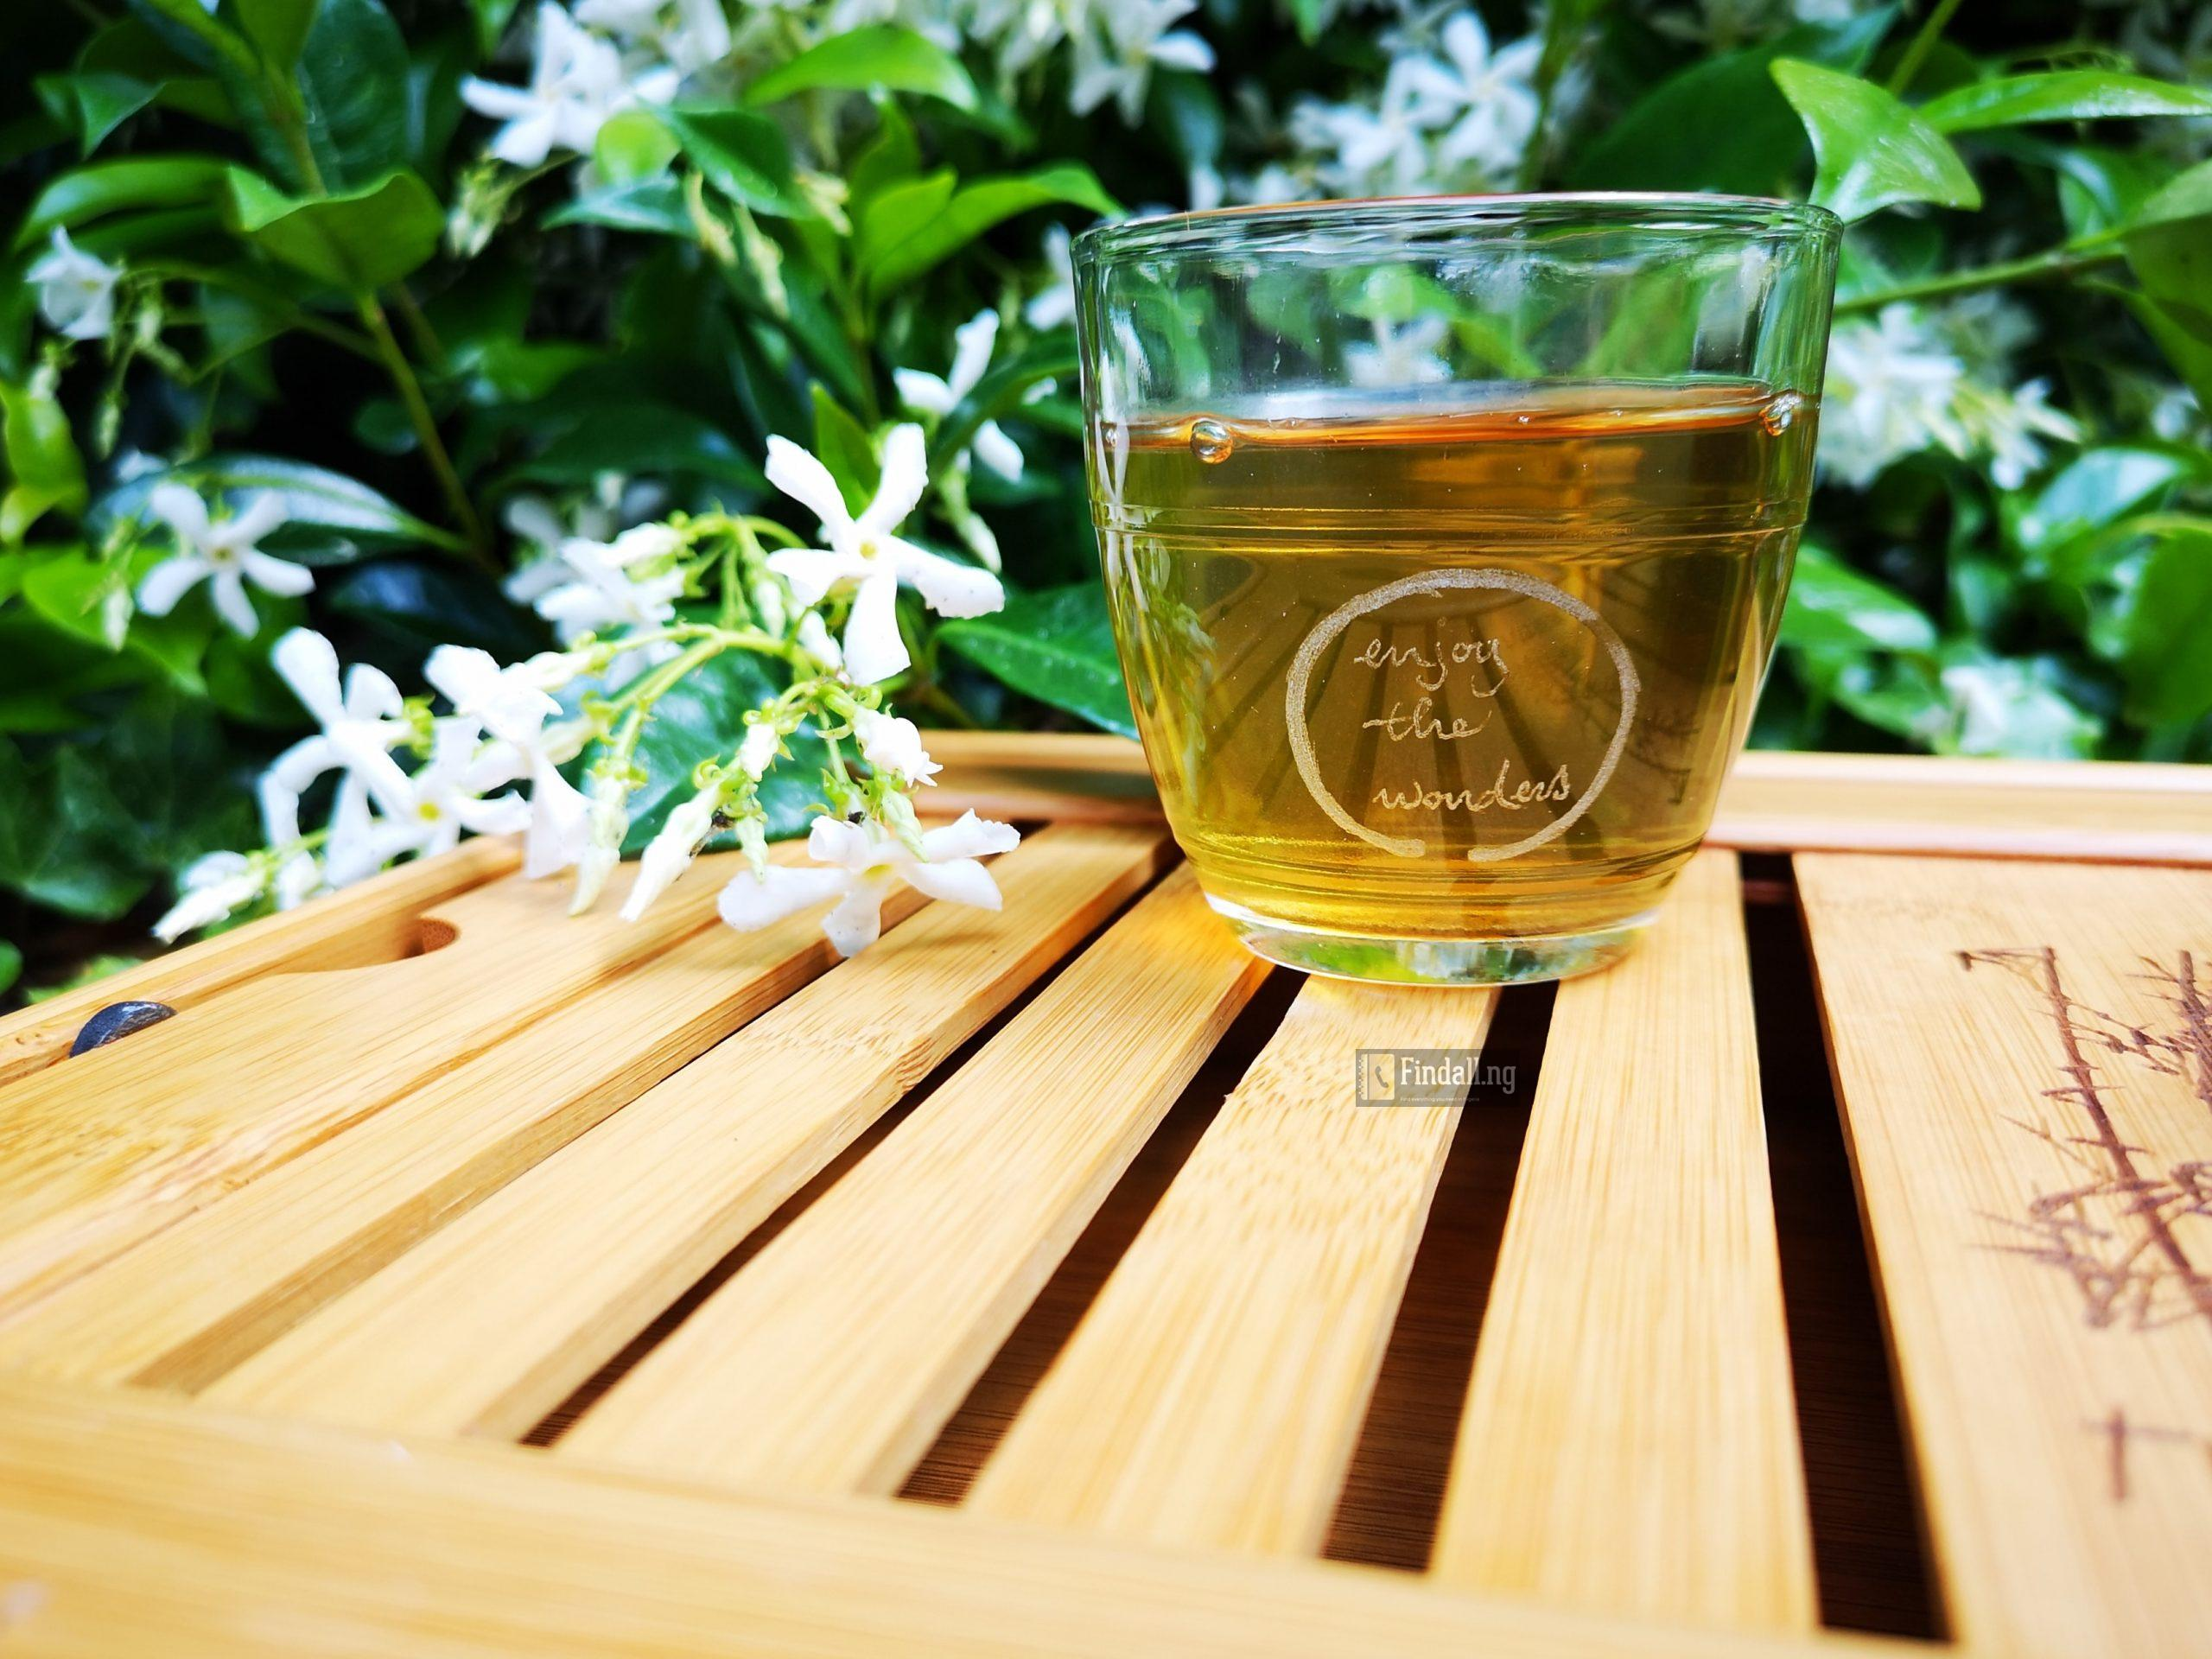 Here are some Amazing Advantages of Green Tea